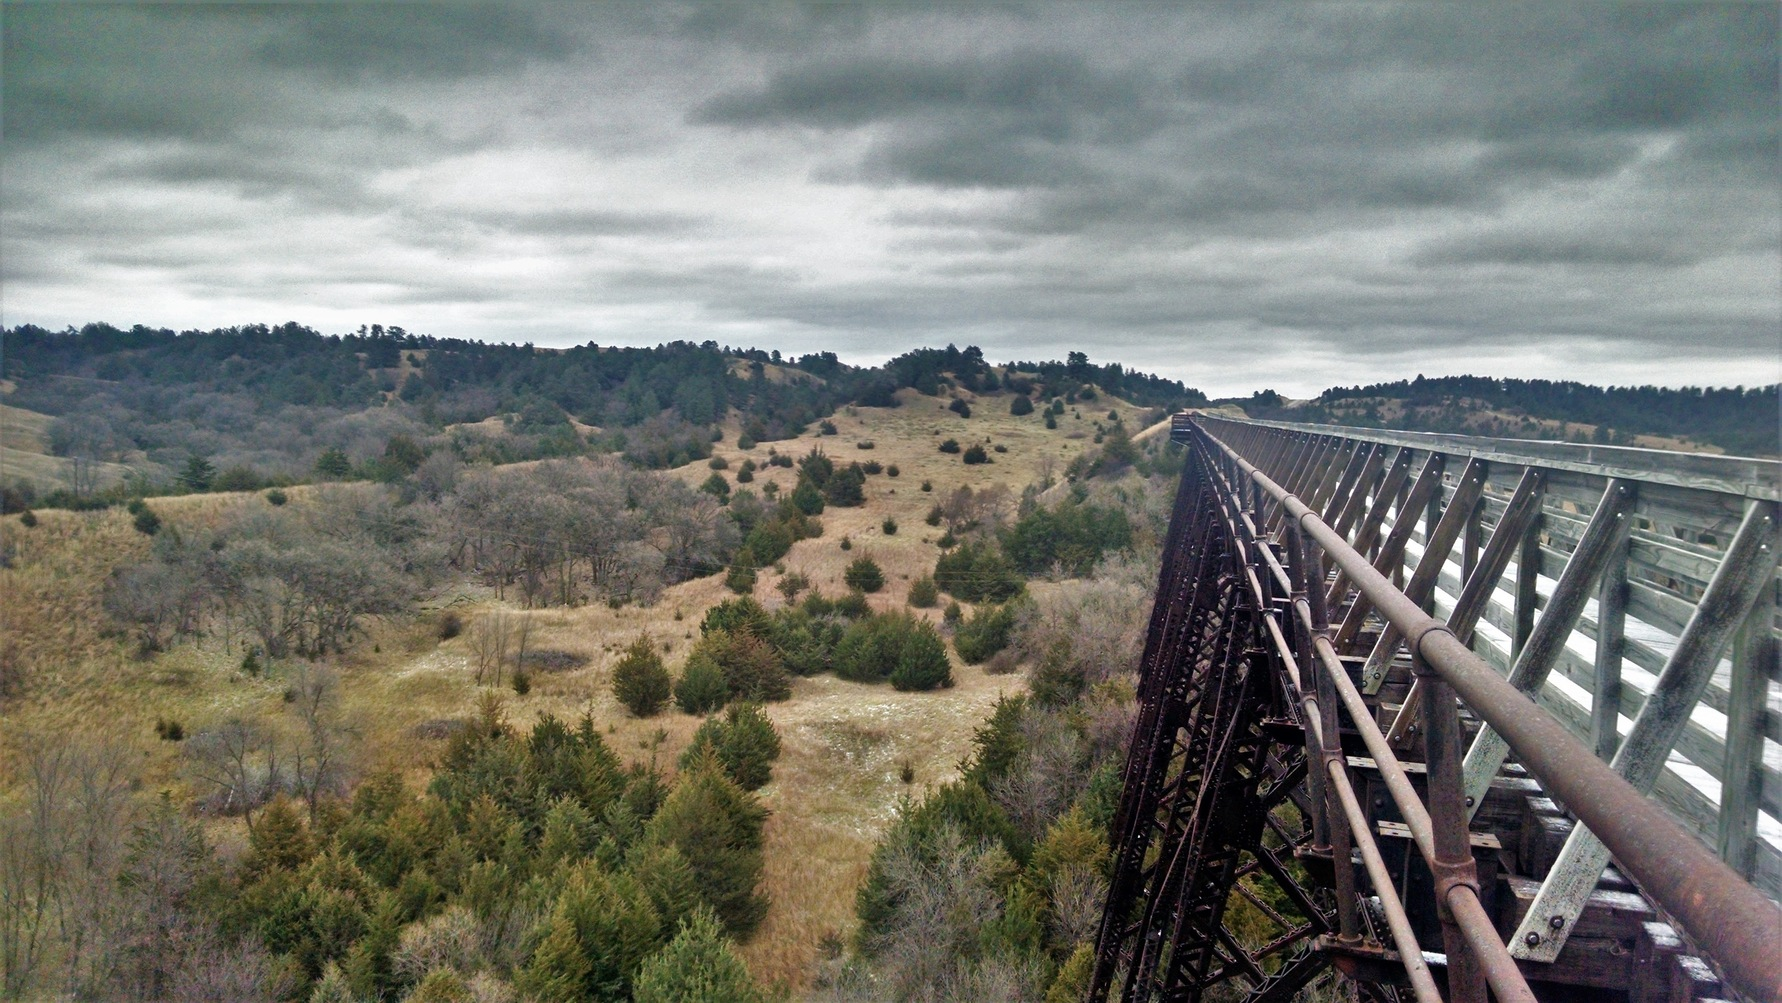 3 - Day 2 - trestle bridge